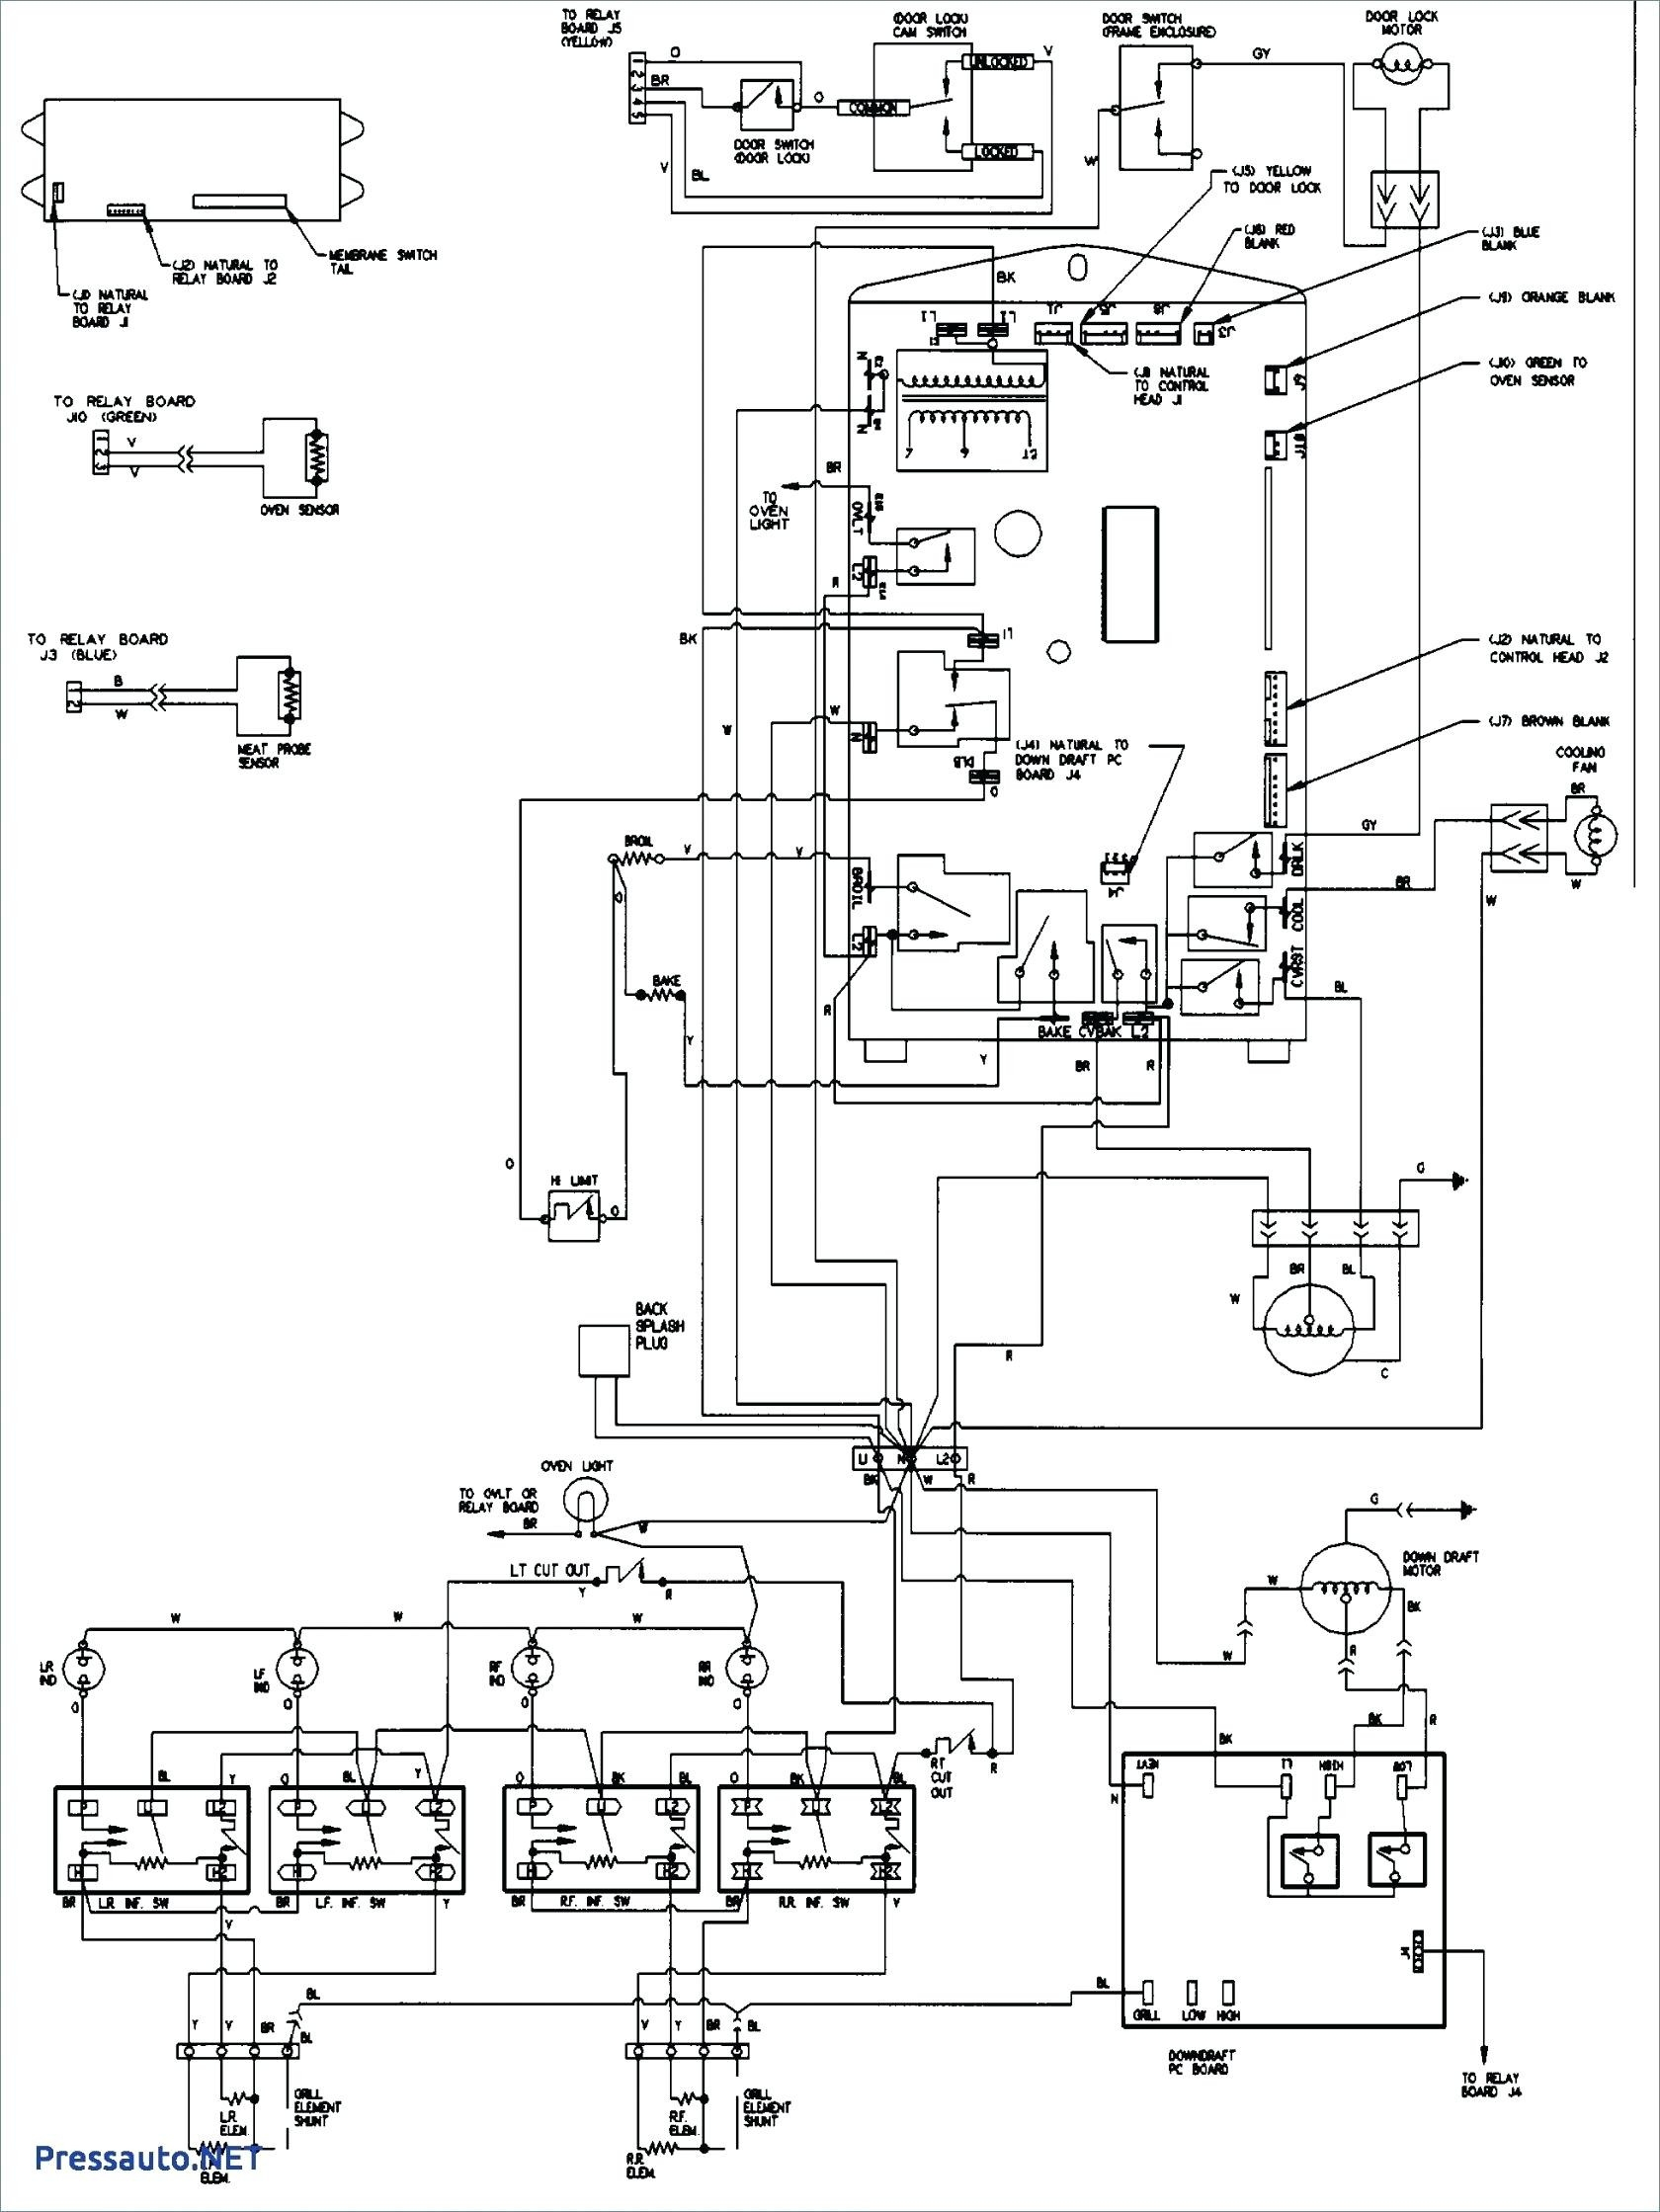 Lennox Furnace thermostat Wiring Diagram | Free Wiring Diagram on engine schematics, amplifier schematics, transformer schematics, ecu schematics, ductwork schematics, circuit schematics, motor schematics, design schematics, engineering schematics, ford diagrams schematics, plumbing schematics, computer schematics, tube amp schematics, electronics schematics, piping schematics, ignition schematics, generator schematics, transmission schematics, electrical schematics, wire schematics,